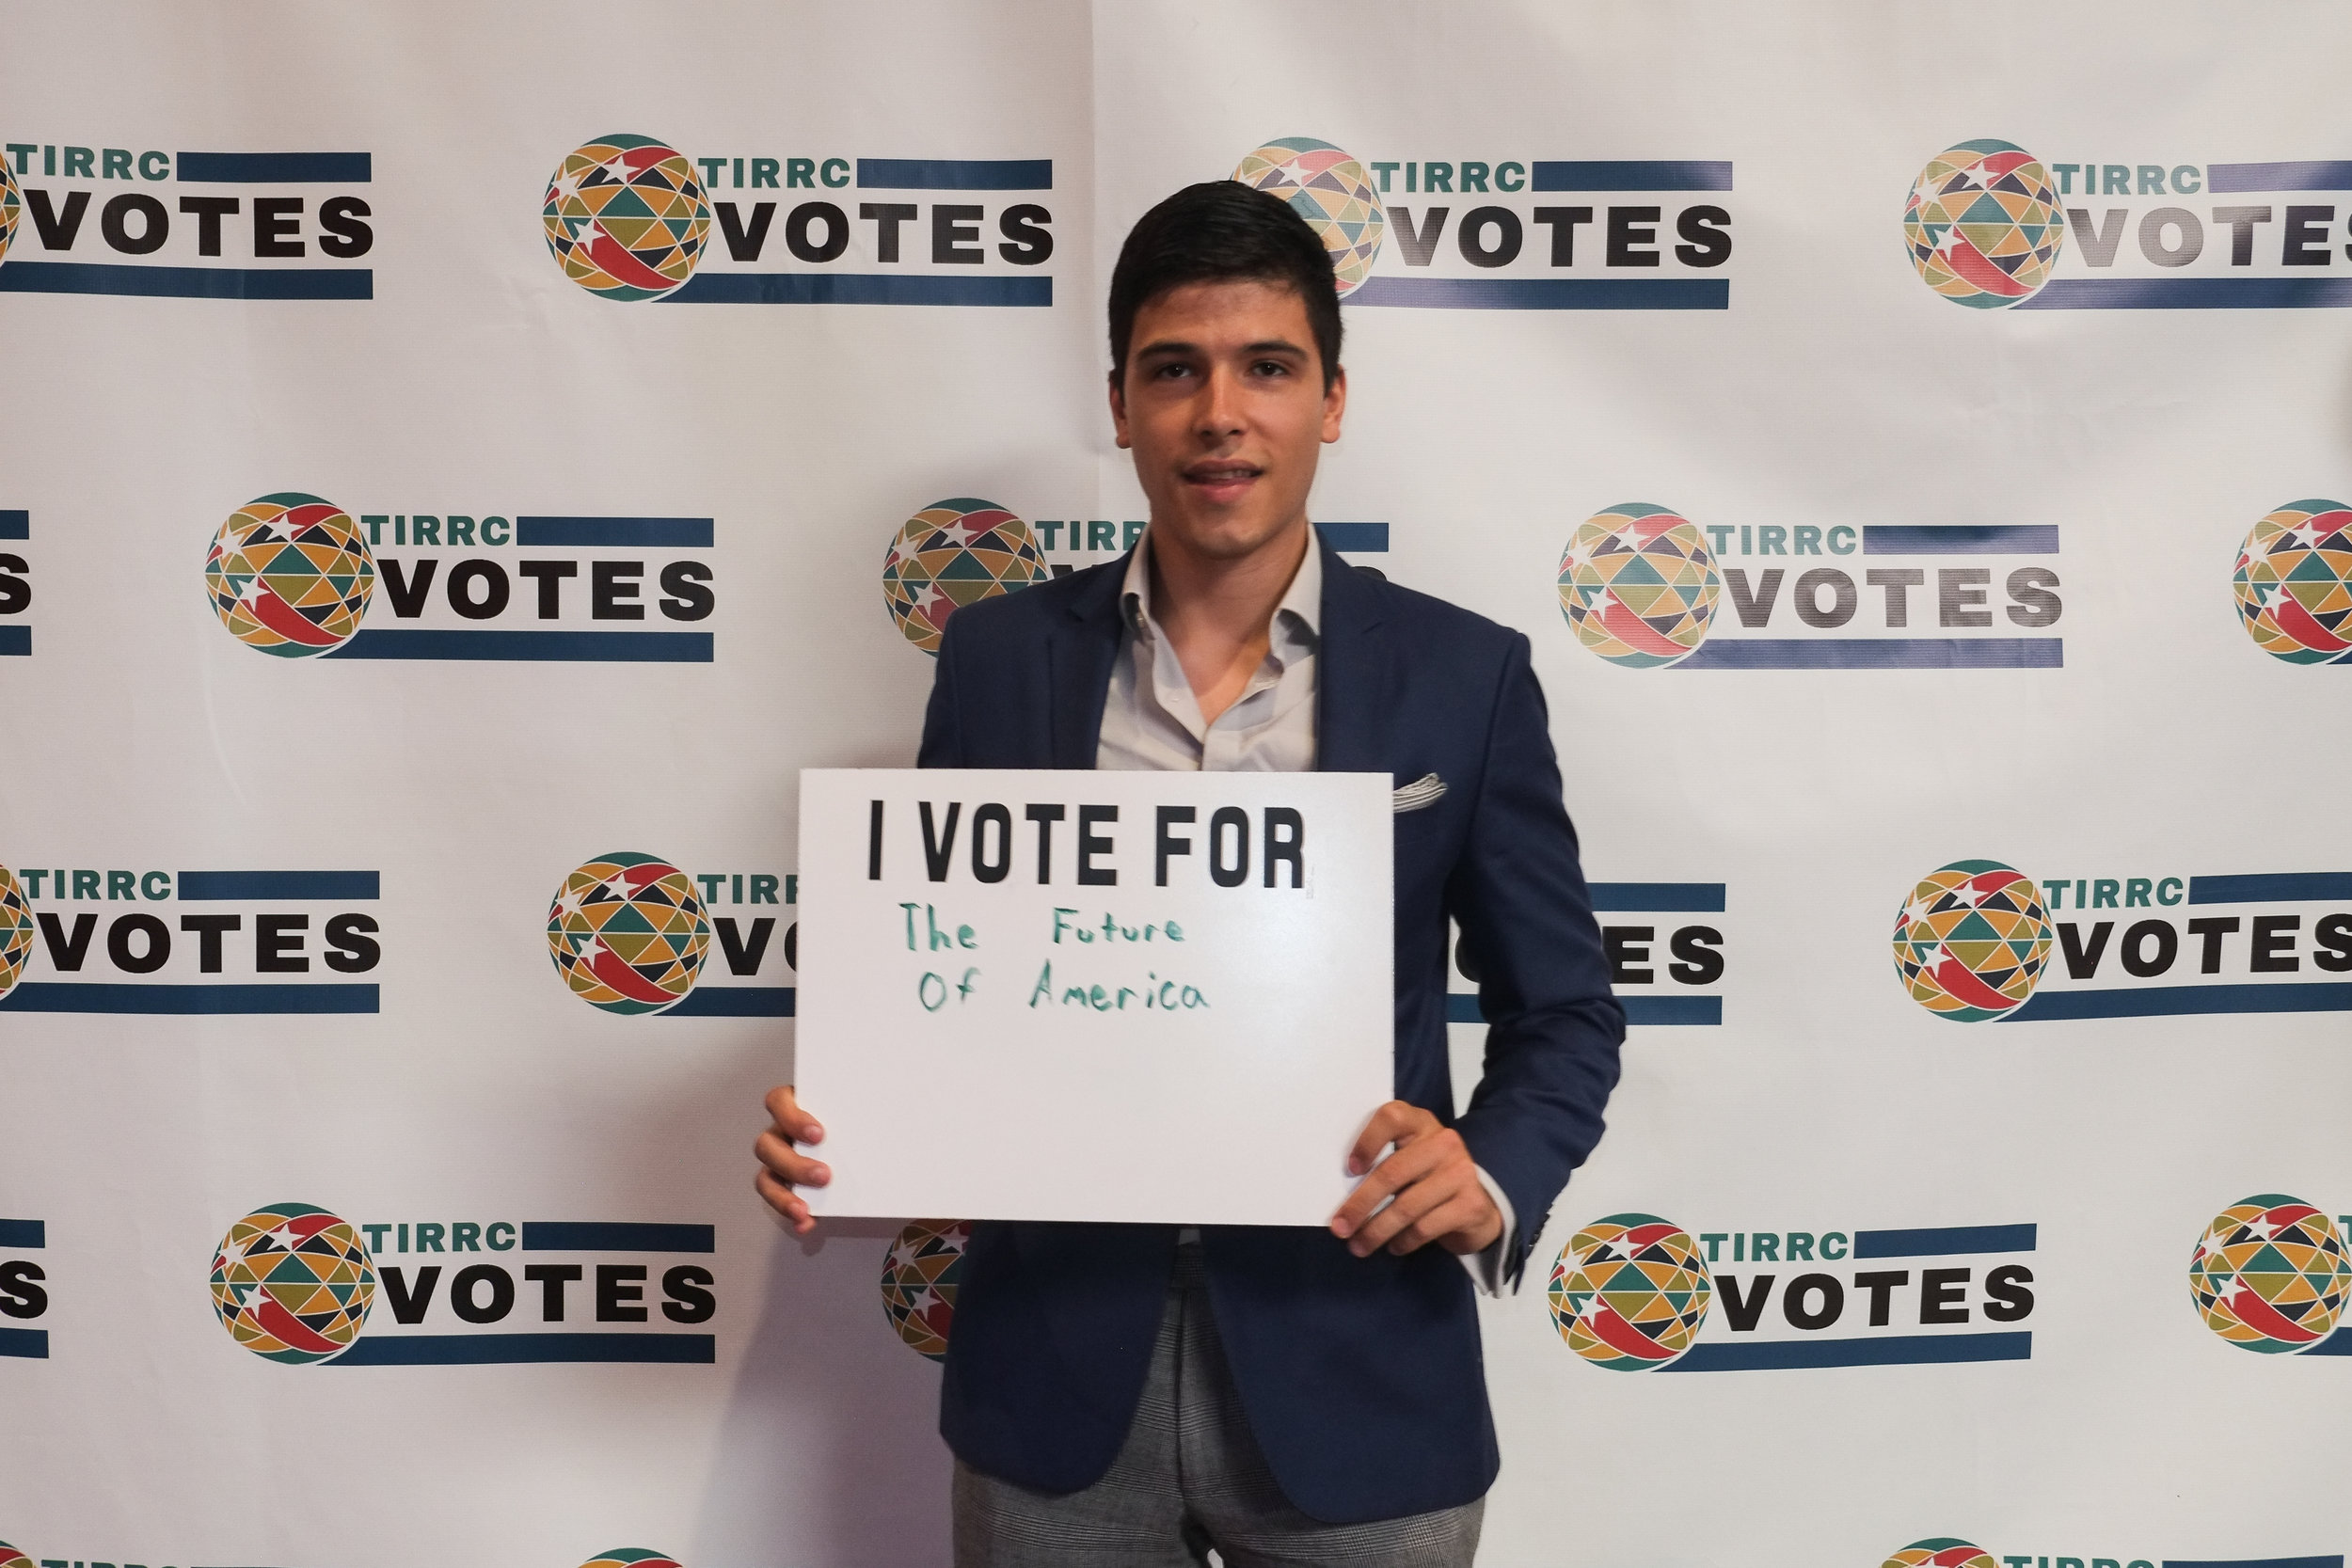 TIRRCVotes-PhotoBooth-12.jpg